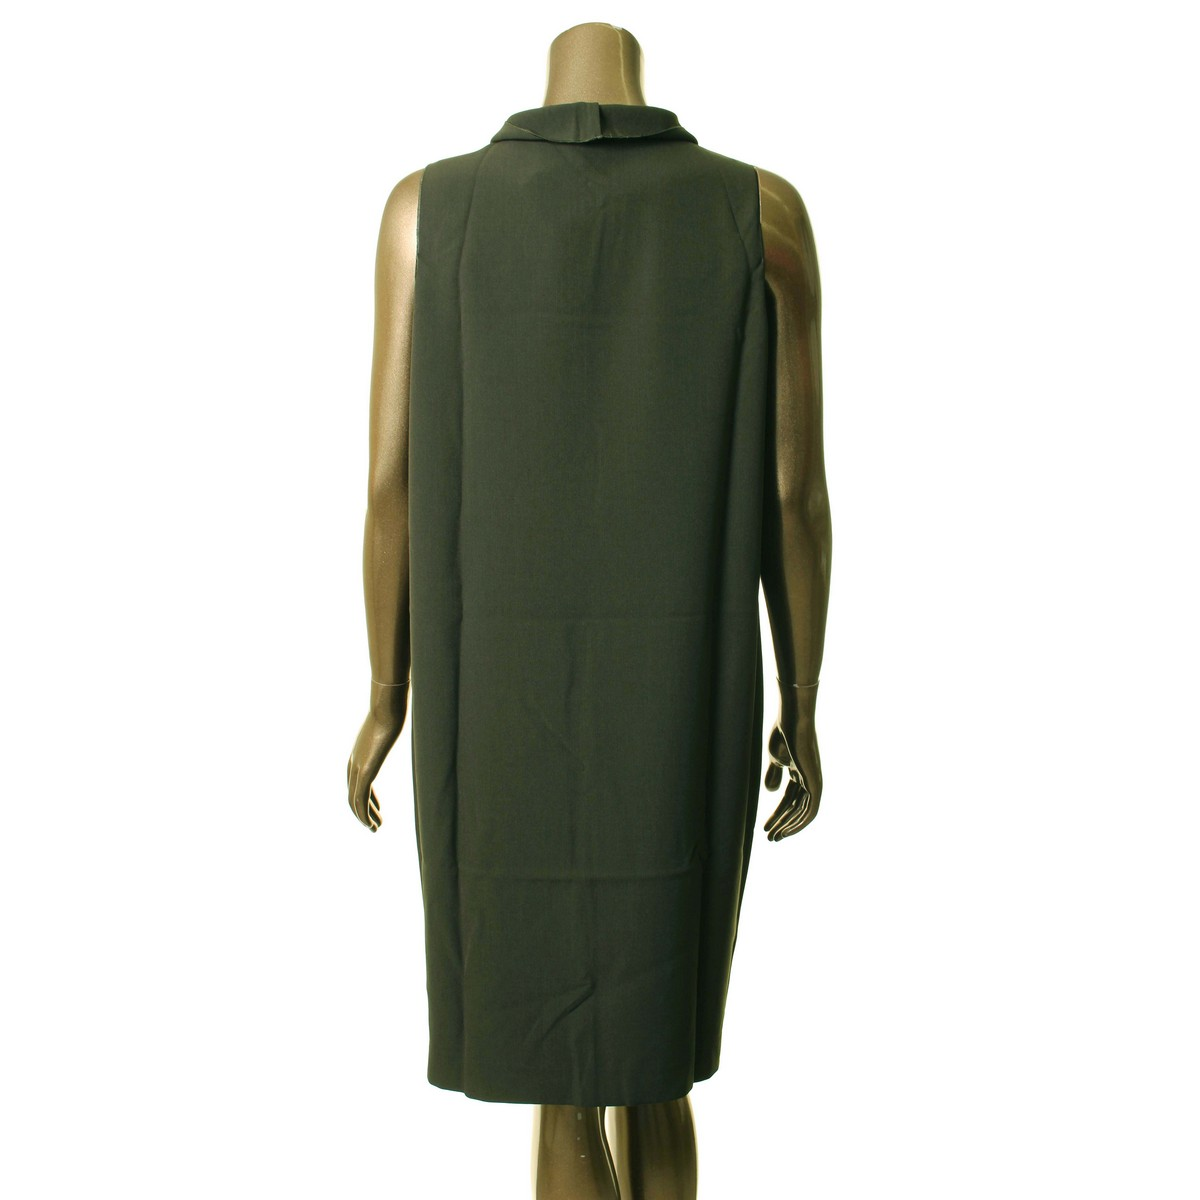 ANNE-KLEIN-NEW-Women-039-s-Sleeveless-Cowl-Neck-Shift-Dress-TEDO thumbnail 4